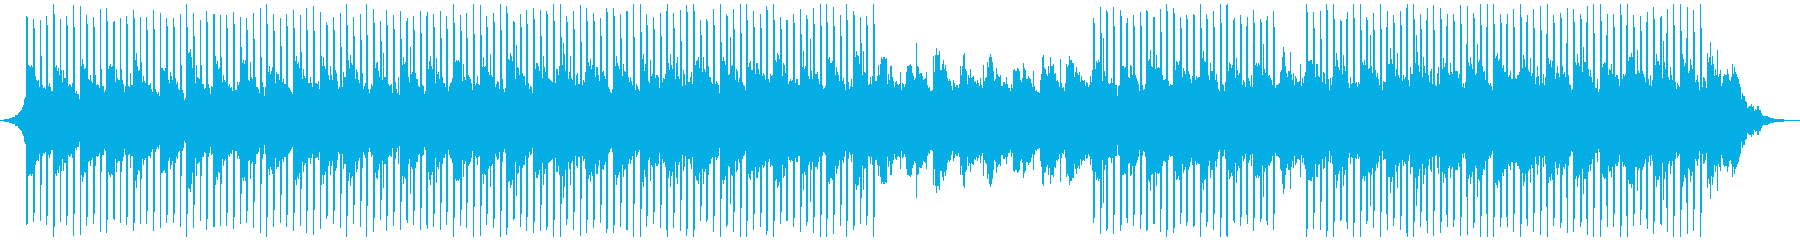 Event Corporate's reproduced waveform